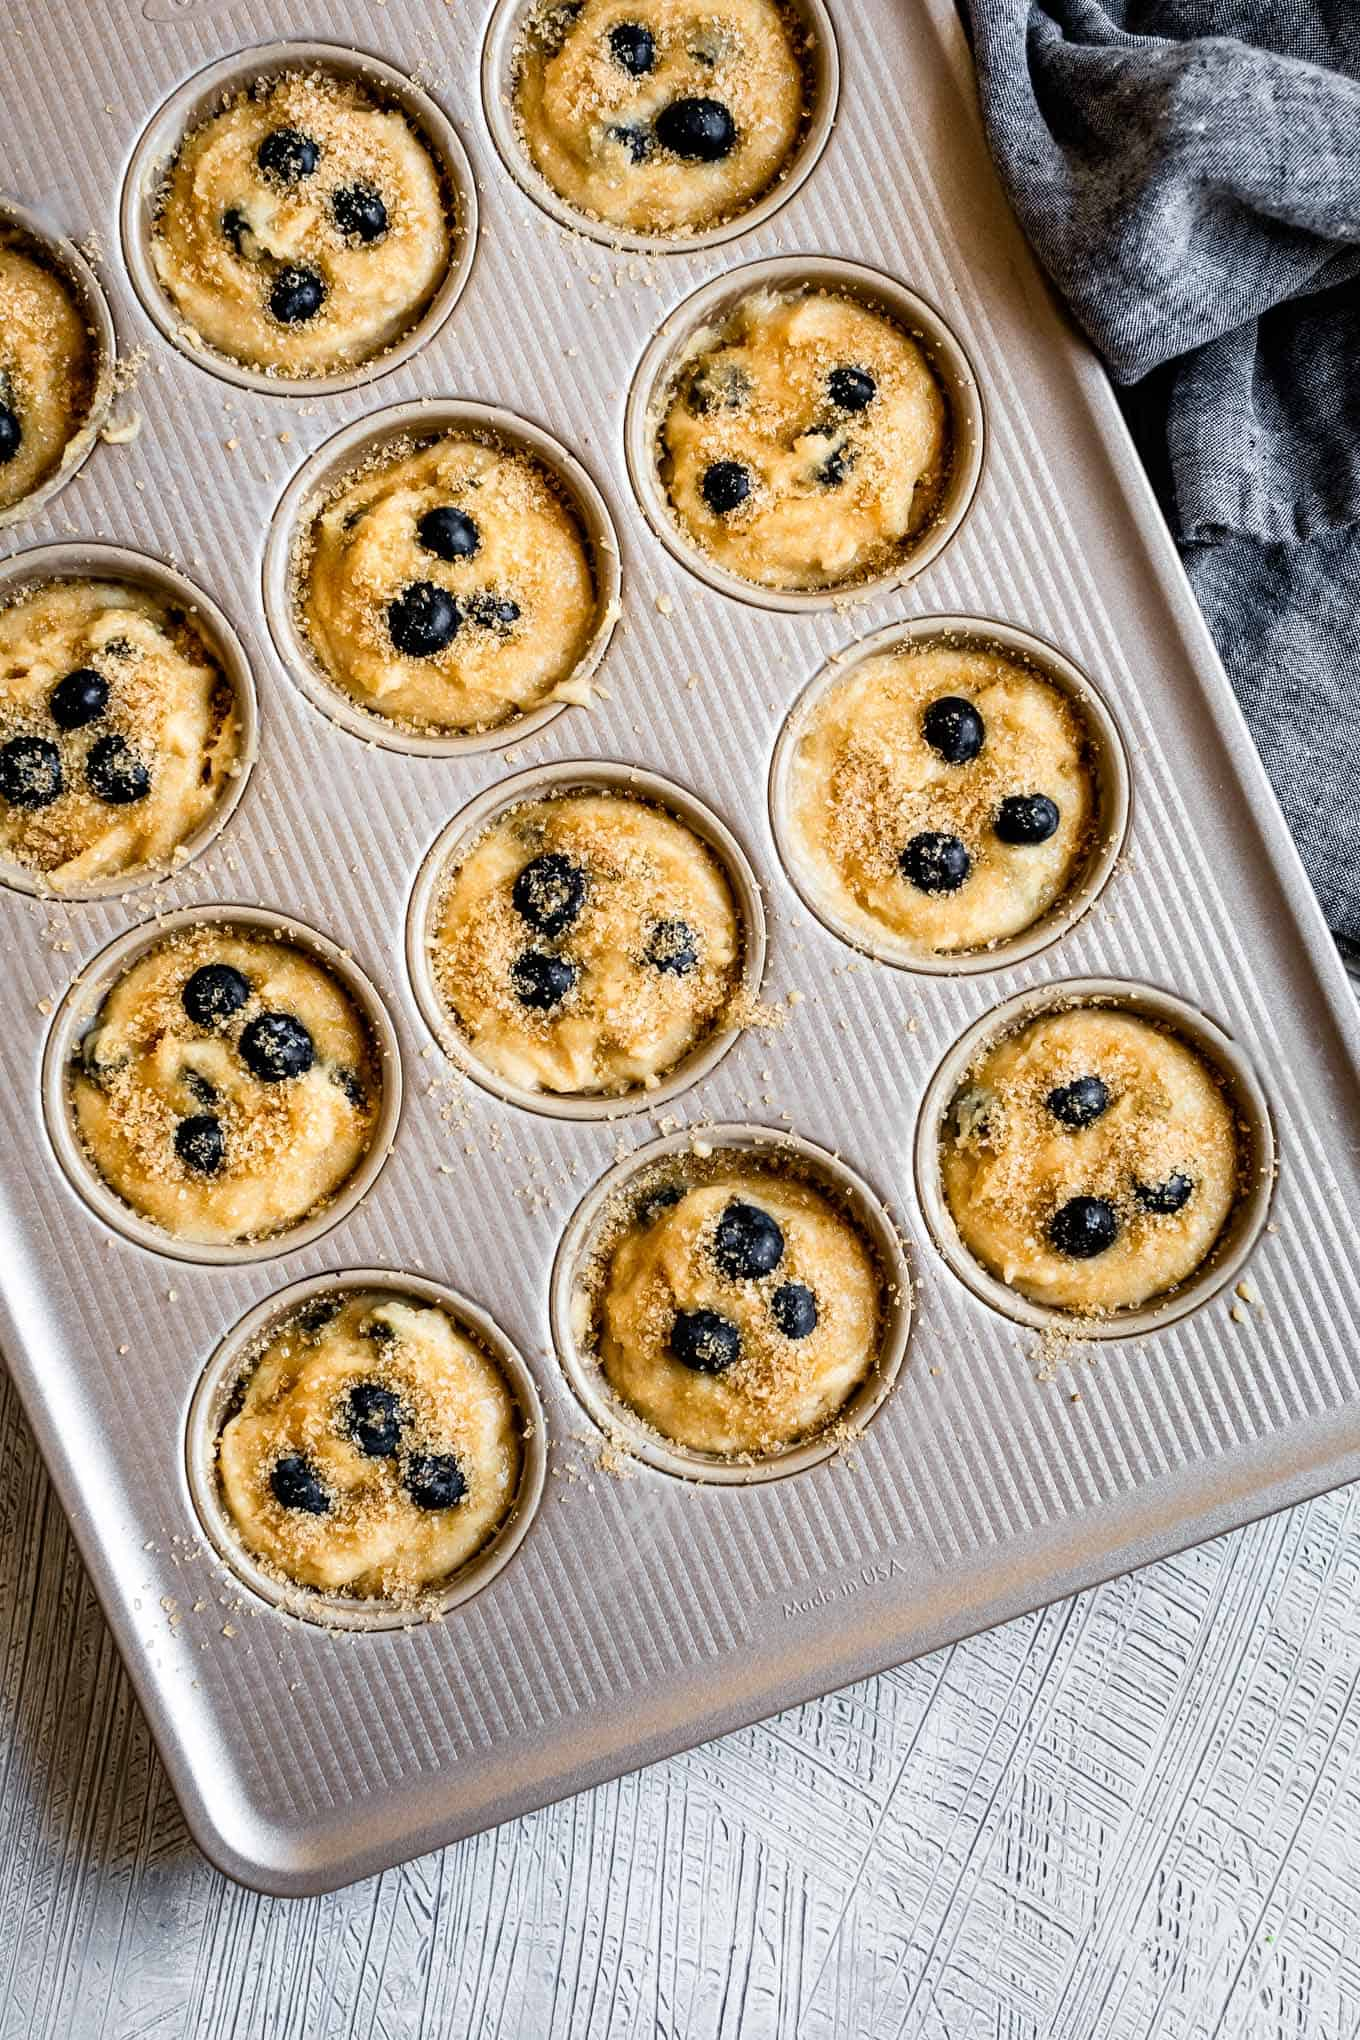 Bakery-Style Gluten-Free Blueberry Muffins with Sugar on Top